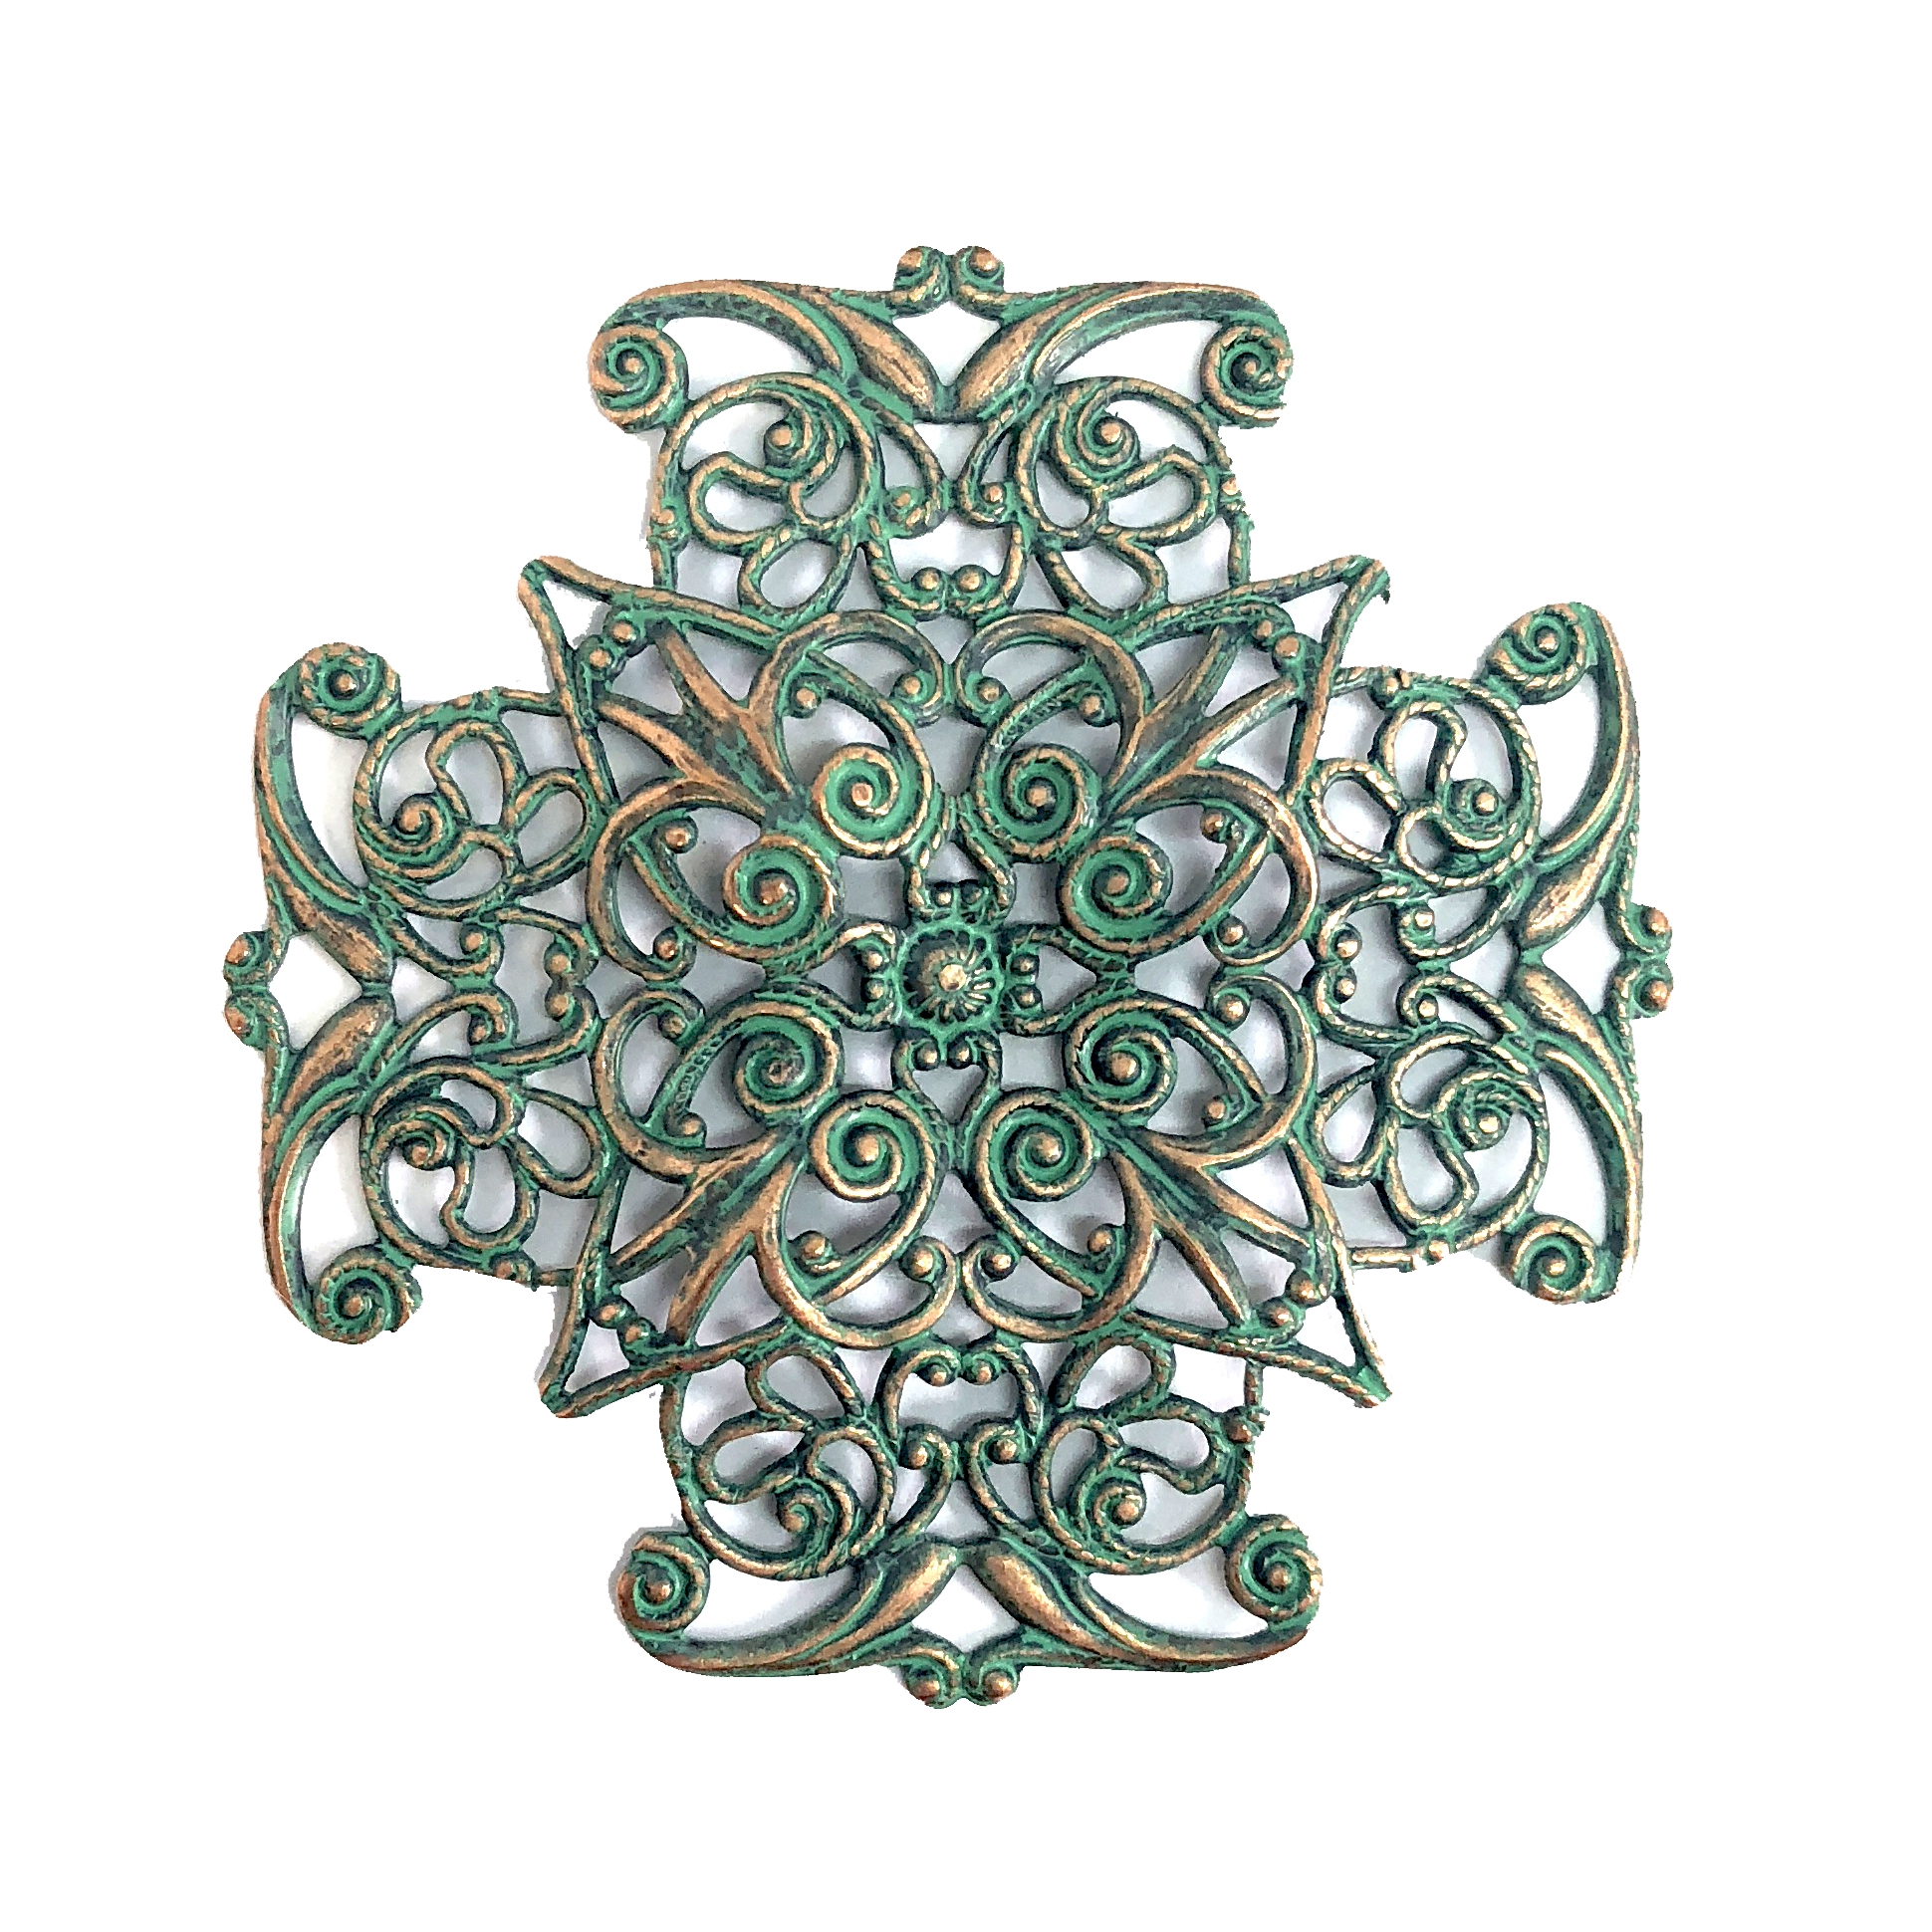 brass filigree, square, aqua copper patina, 08228, vintage jewelry supplies, brass jewelry parts, US made jewelry supplies, dapt filigree, nickel free jewelry parts, aqua, beading filigree